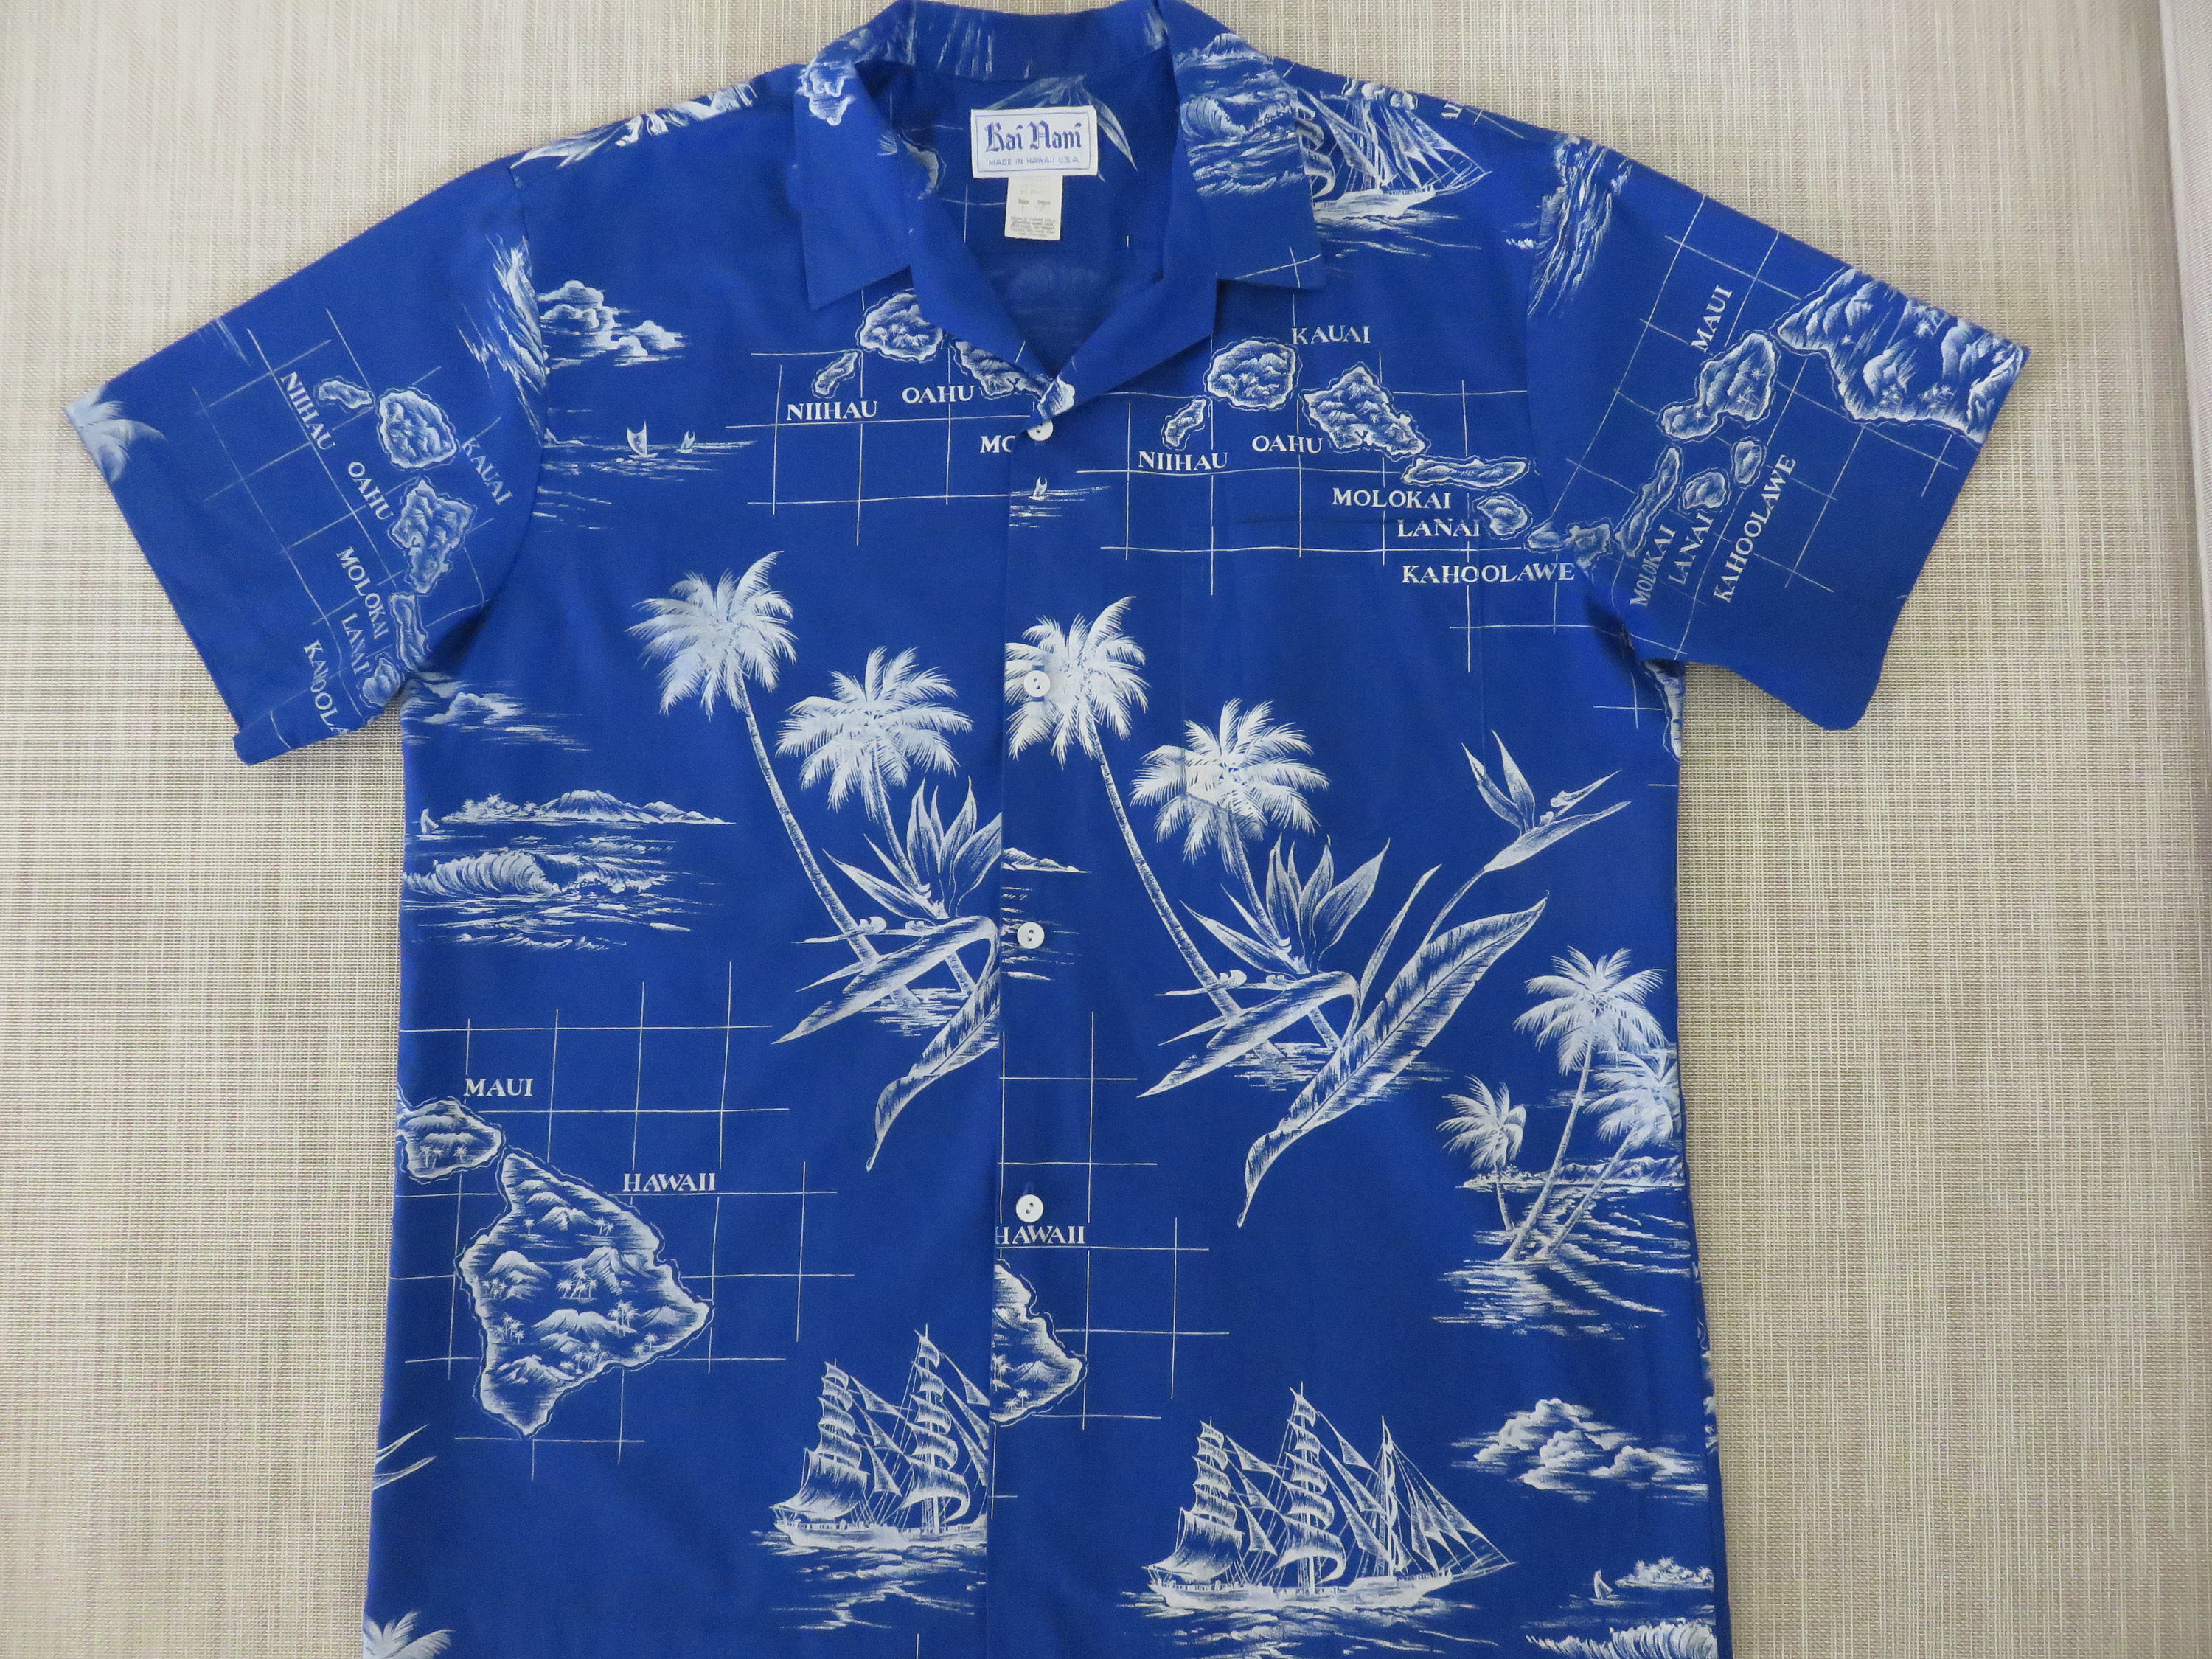 79c86cb7 Hawaiian Shirt Map Shirt RAI NANI Vintage Aloha Shirt Schooner Ship Hawaii  Islands Maui Bird of